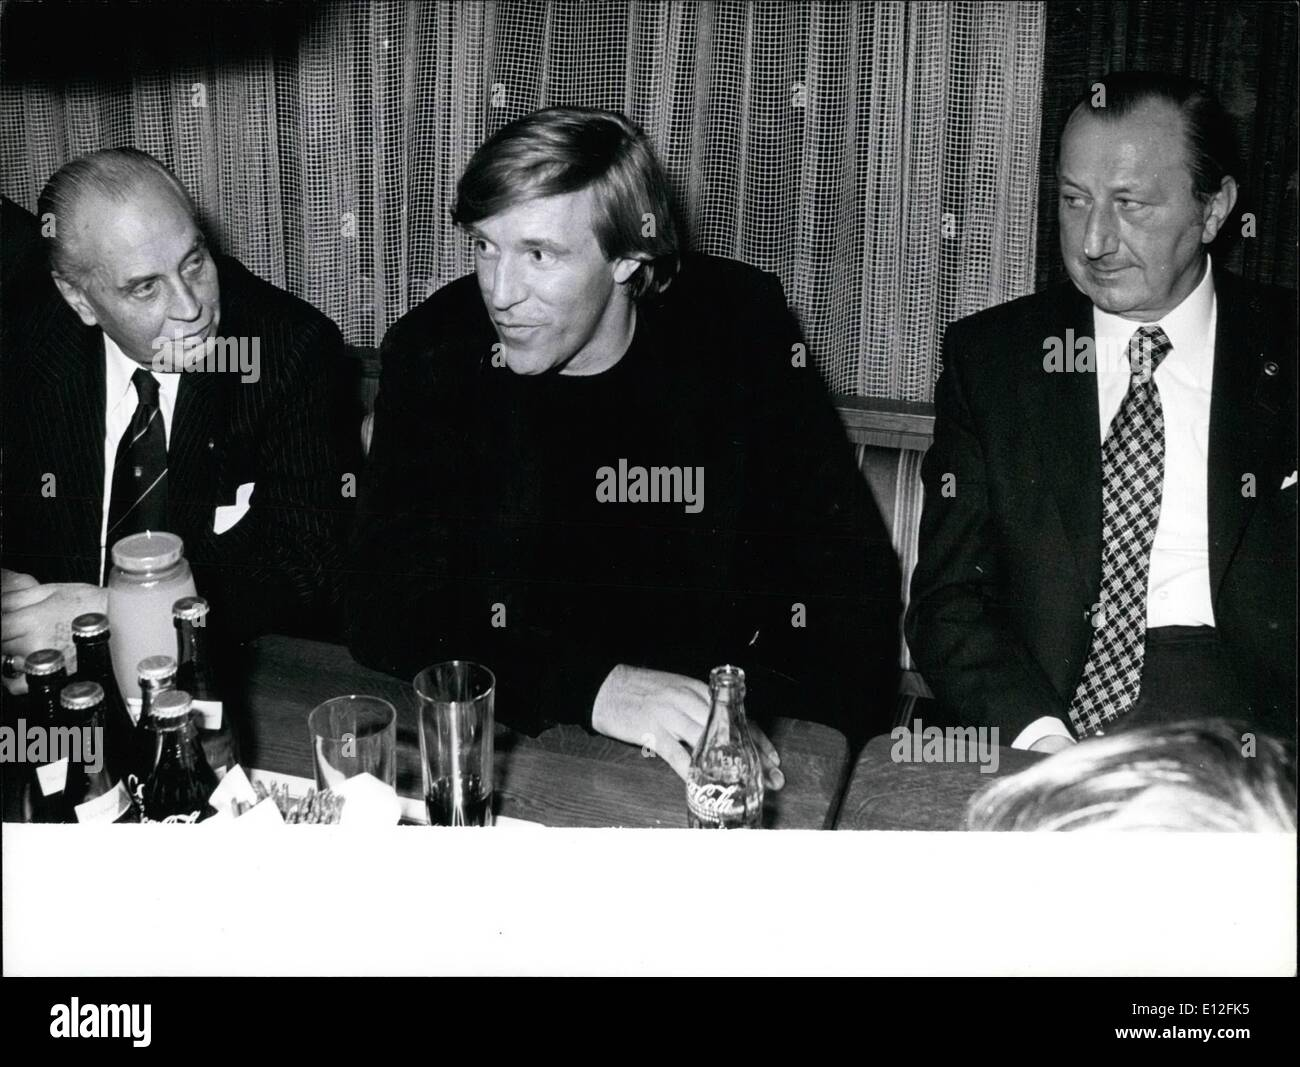 Dec. 26, 2011 - Guenter Netzer - The New Manager of the ''HSV'' - Football was his life - and it will be in futurel Guenter Netzer (Our Picture), formerly star of the football clubs ''Borussia Moenchengladbach'' (Germany) and ''Real Madrid'' (Spain) and 35 times national player, is now manager of the ''Hamburger SPORTVEREIN'' (Football club of Hamburg; FRG) and so sucessor of Dr. Peter Krohn, who departed in discord some weeks ago. When- although the affair is perfect - the new manager assumes his duties, isn't settled, for Guenter Netzer shall make an American tour between 15.1. and 6.2 - Stock Image